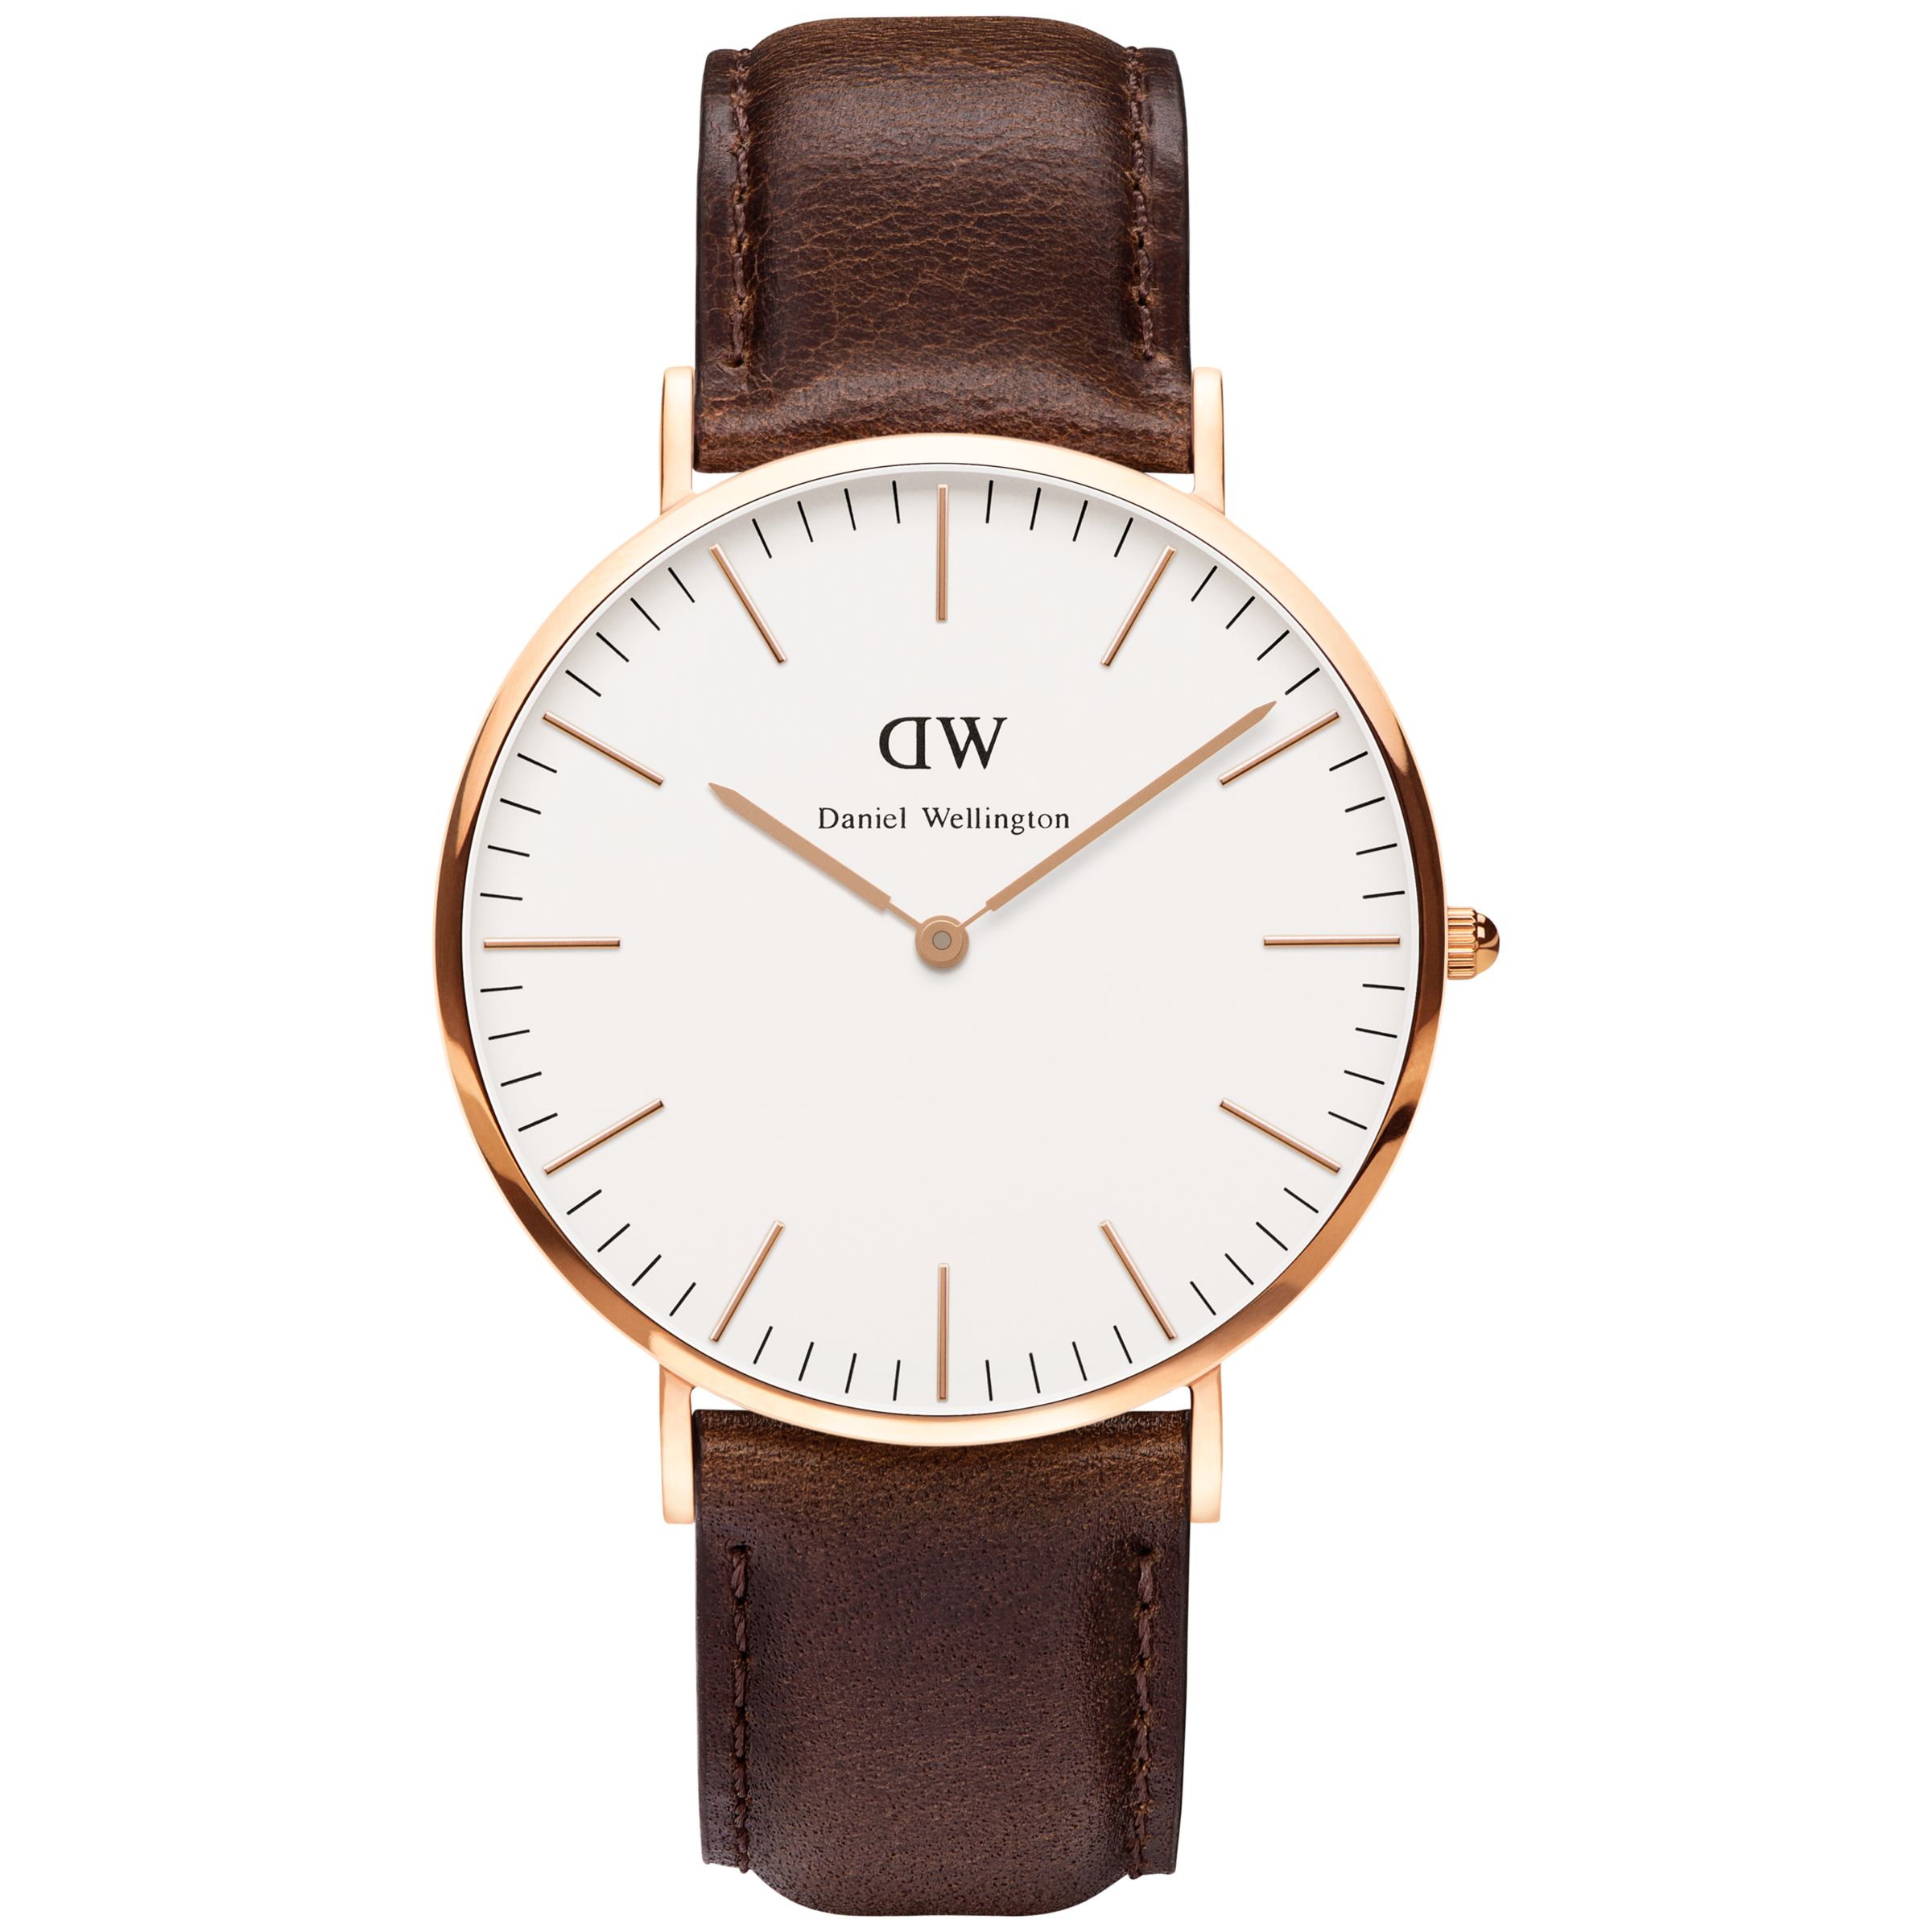 Daniel Wellington Daniel Wellington DW00100009 Men's 40mm Classy Rose Gold Plated Leather Strap Watch, Brown/White